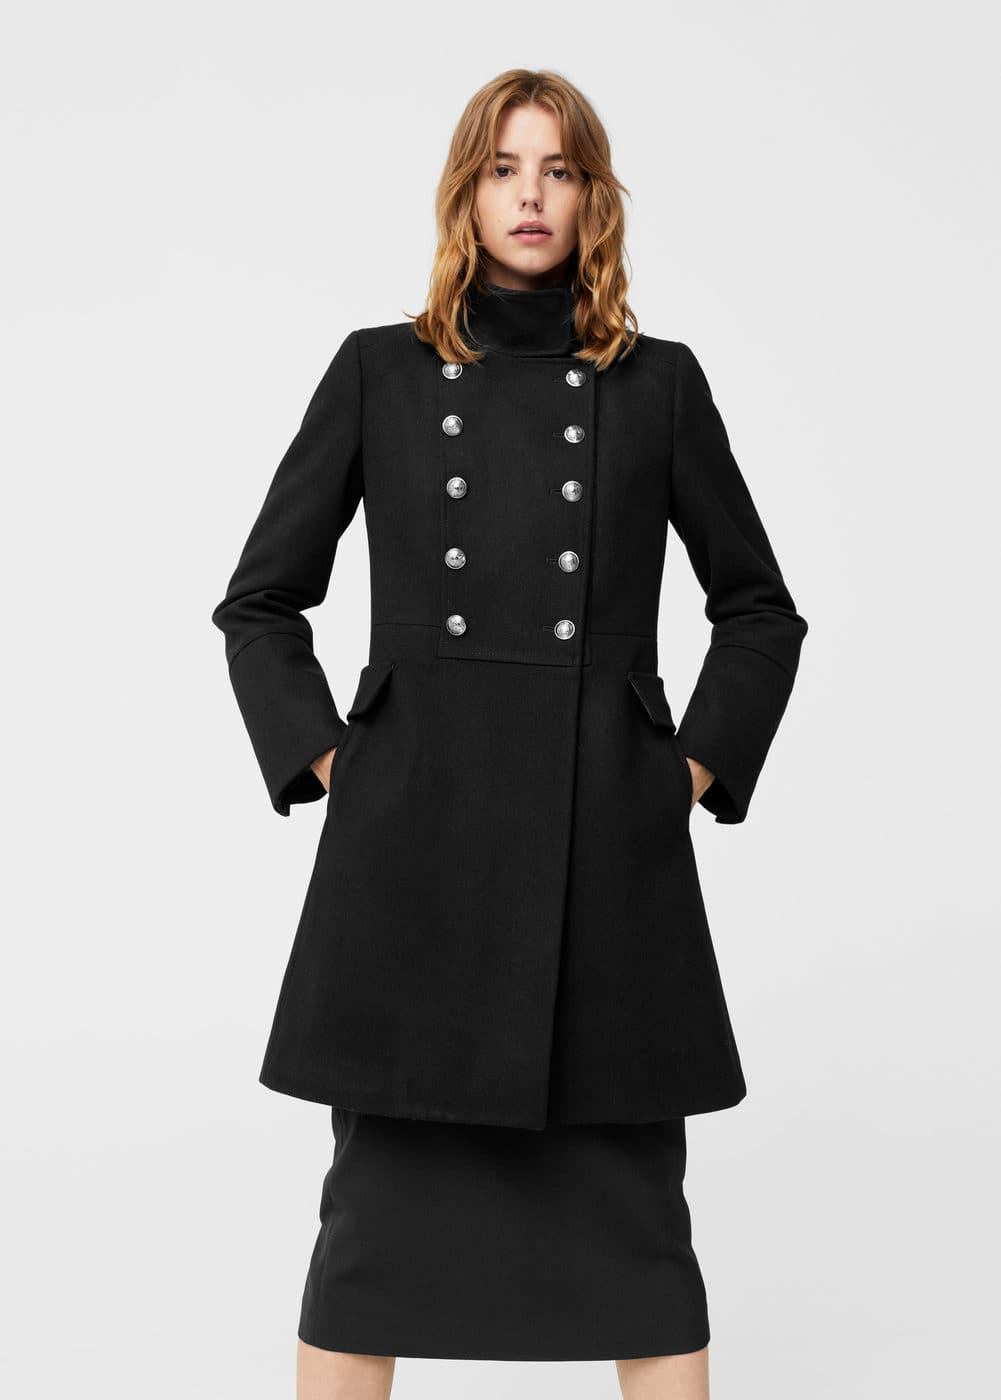 Double-breasted wool coat - Woman | MANGO Lithuania